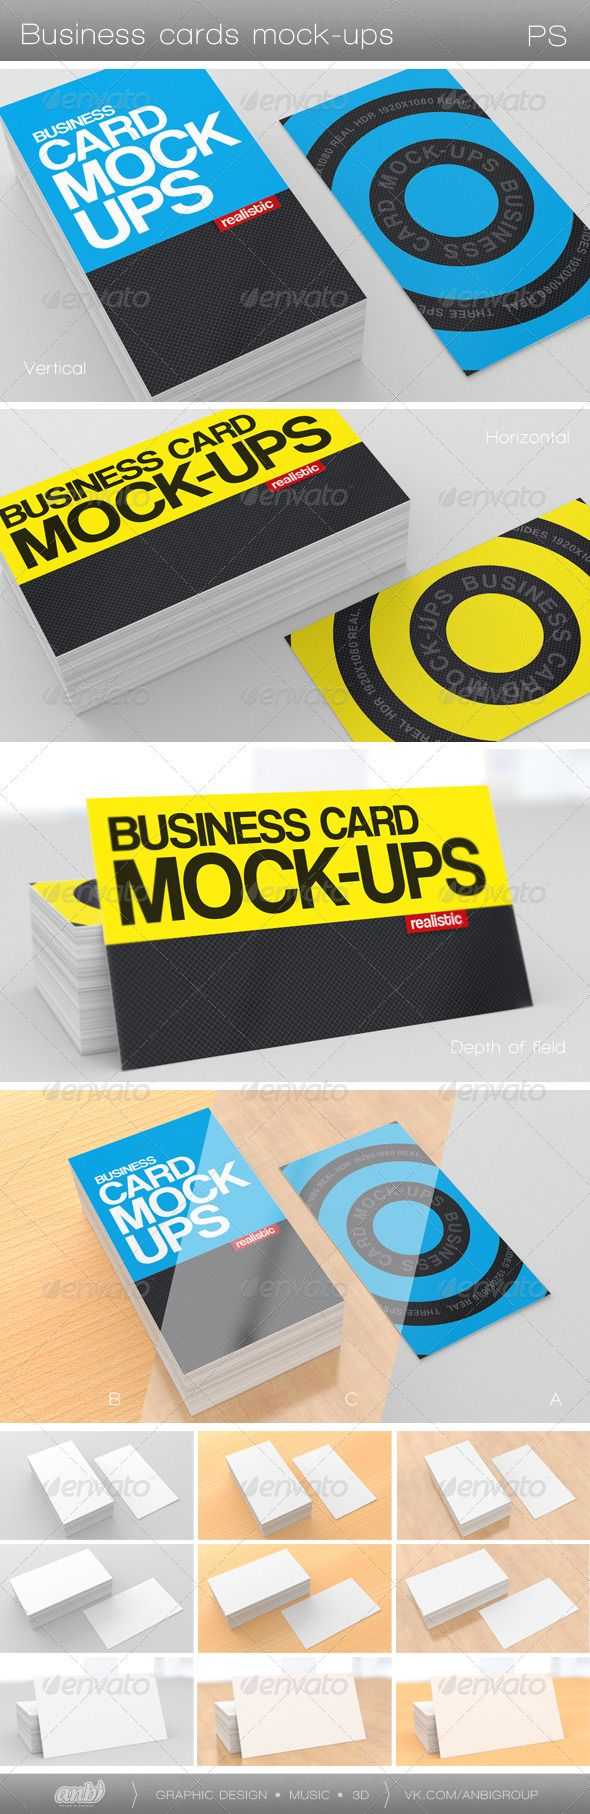 717 best Business Card Mockup images on Pinterest | Miniatures ...